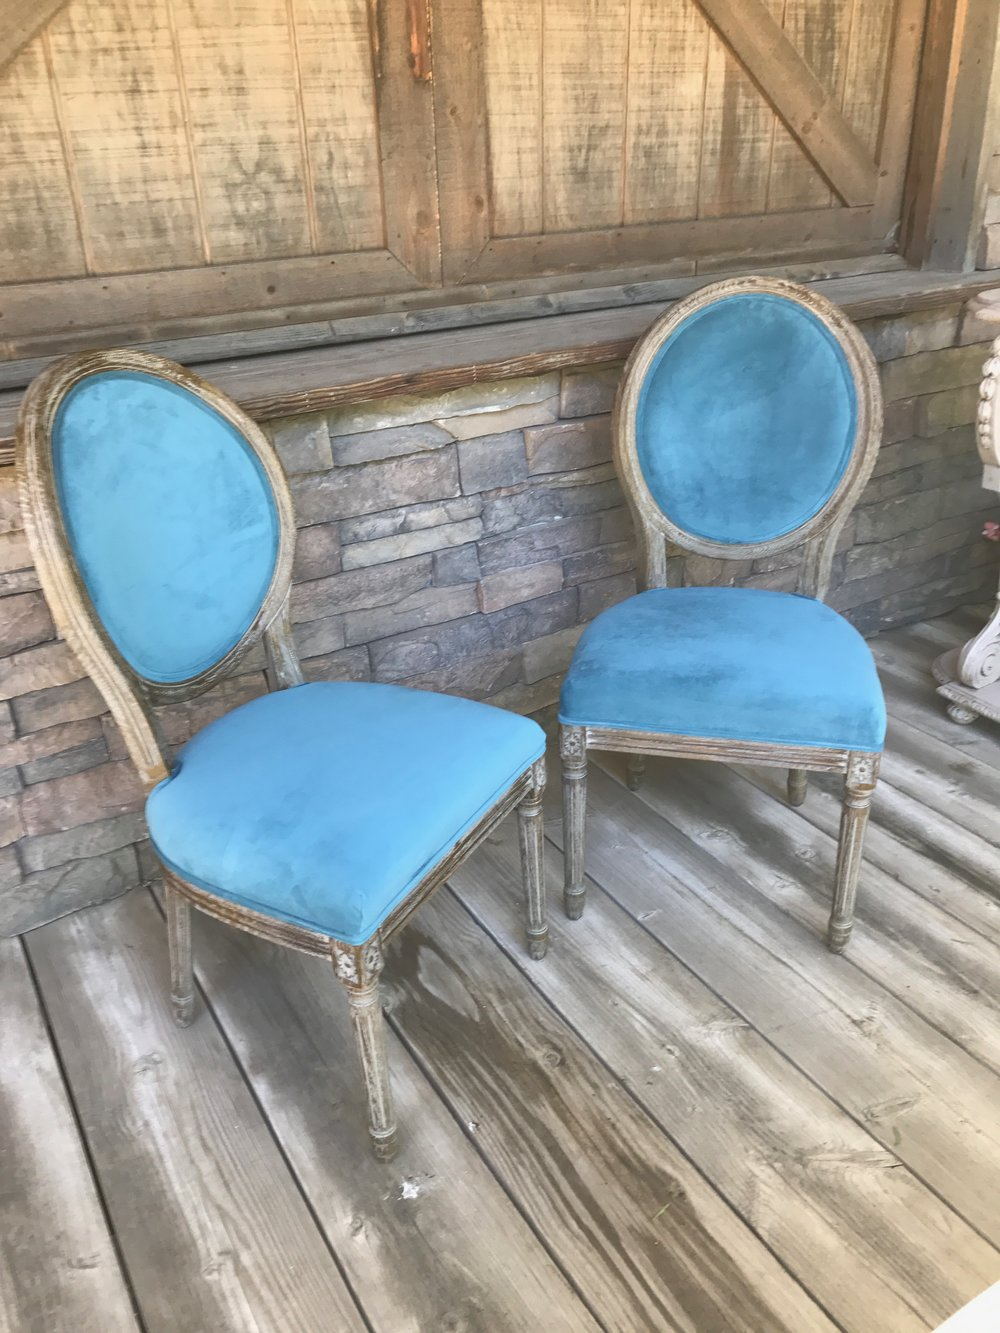 PEACOCK BRIDE AND GROOM CHAIRS (2) - $70